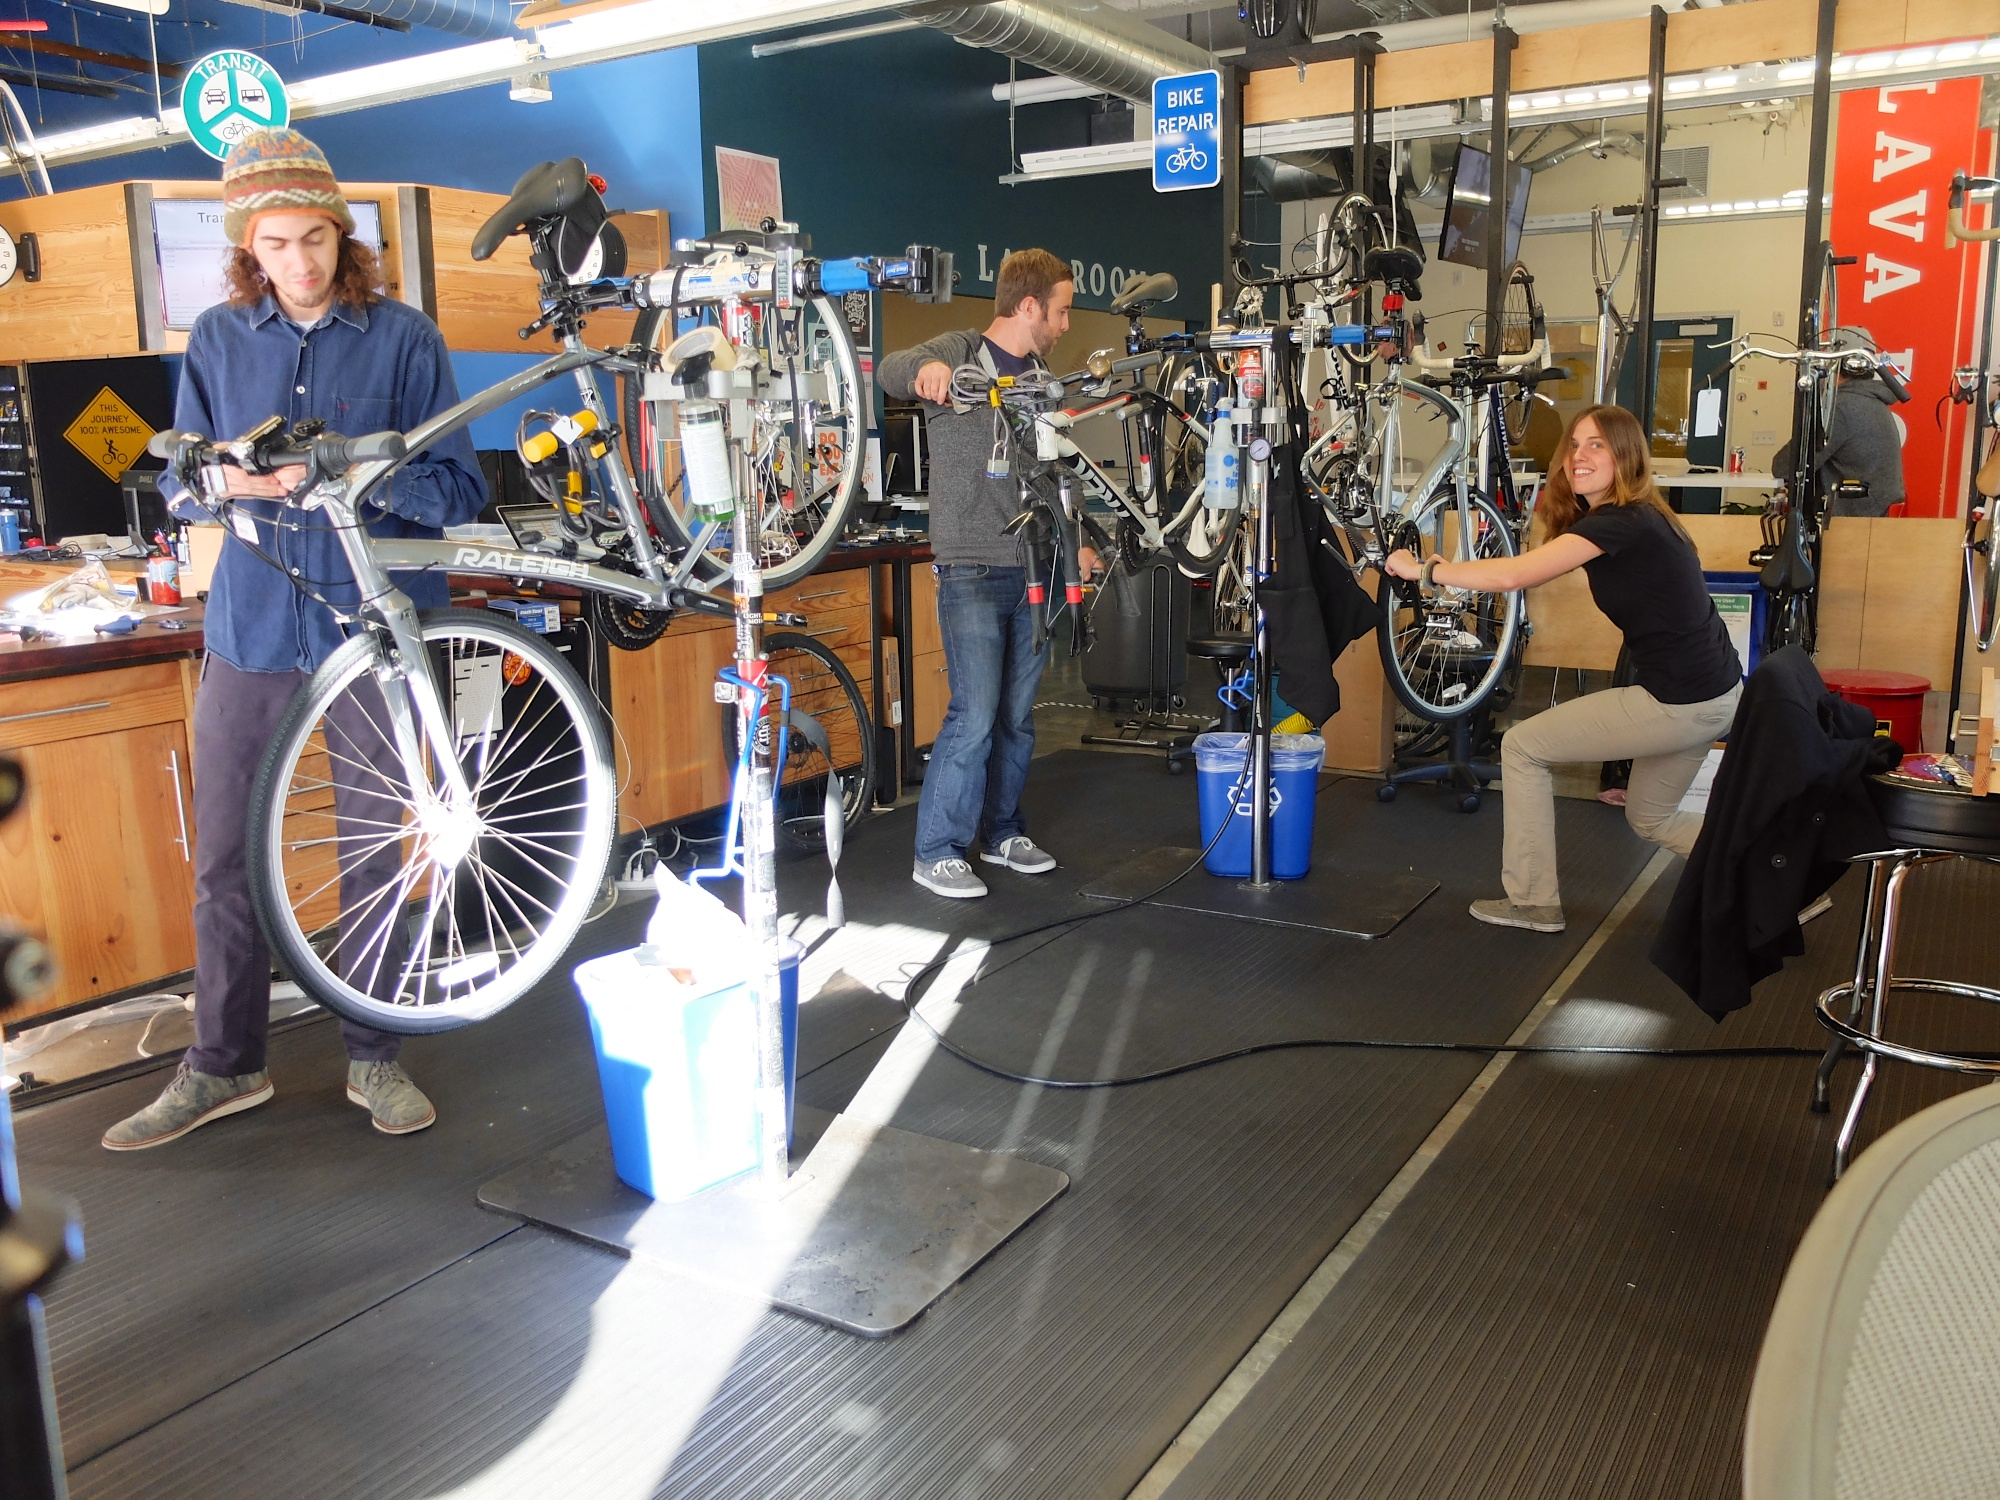 People helping repair bikes.